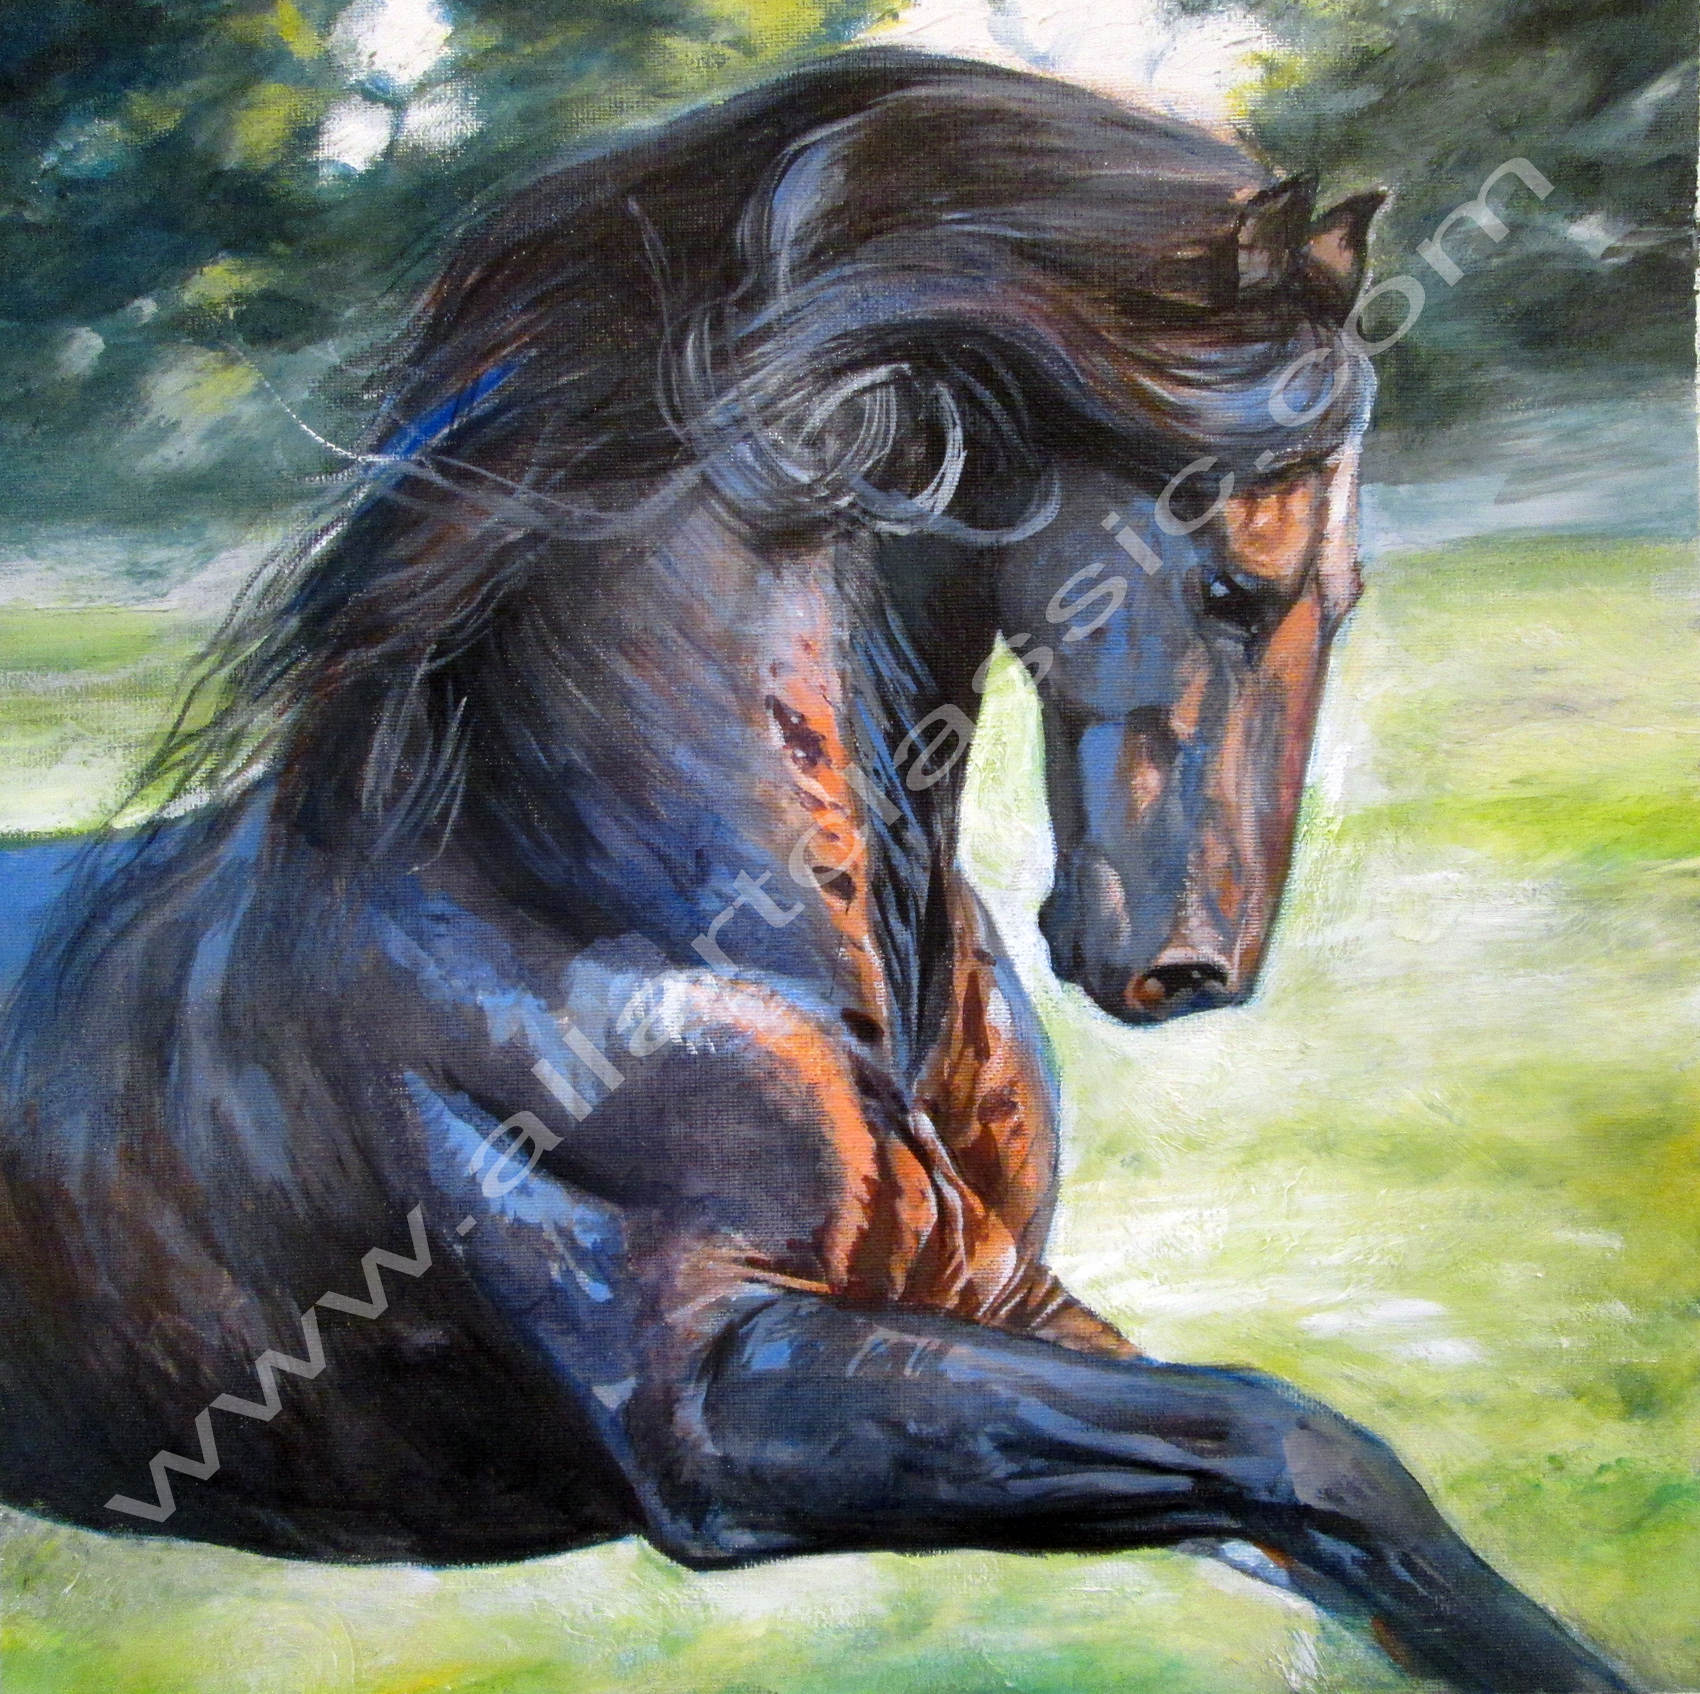 Horse paintings and family portraits